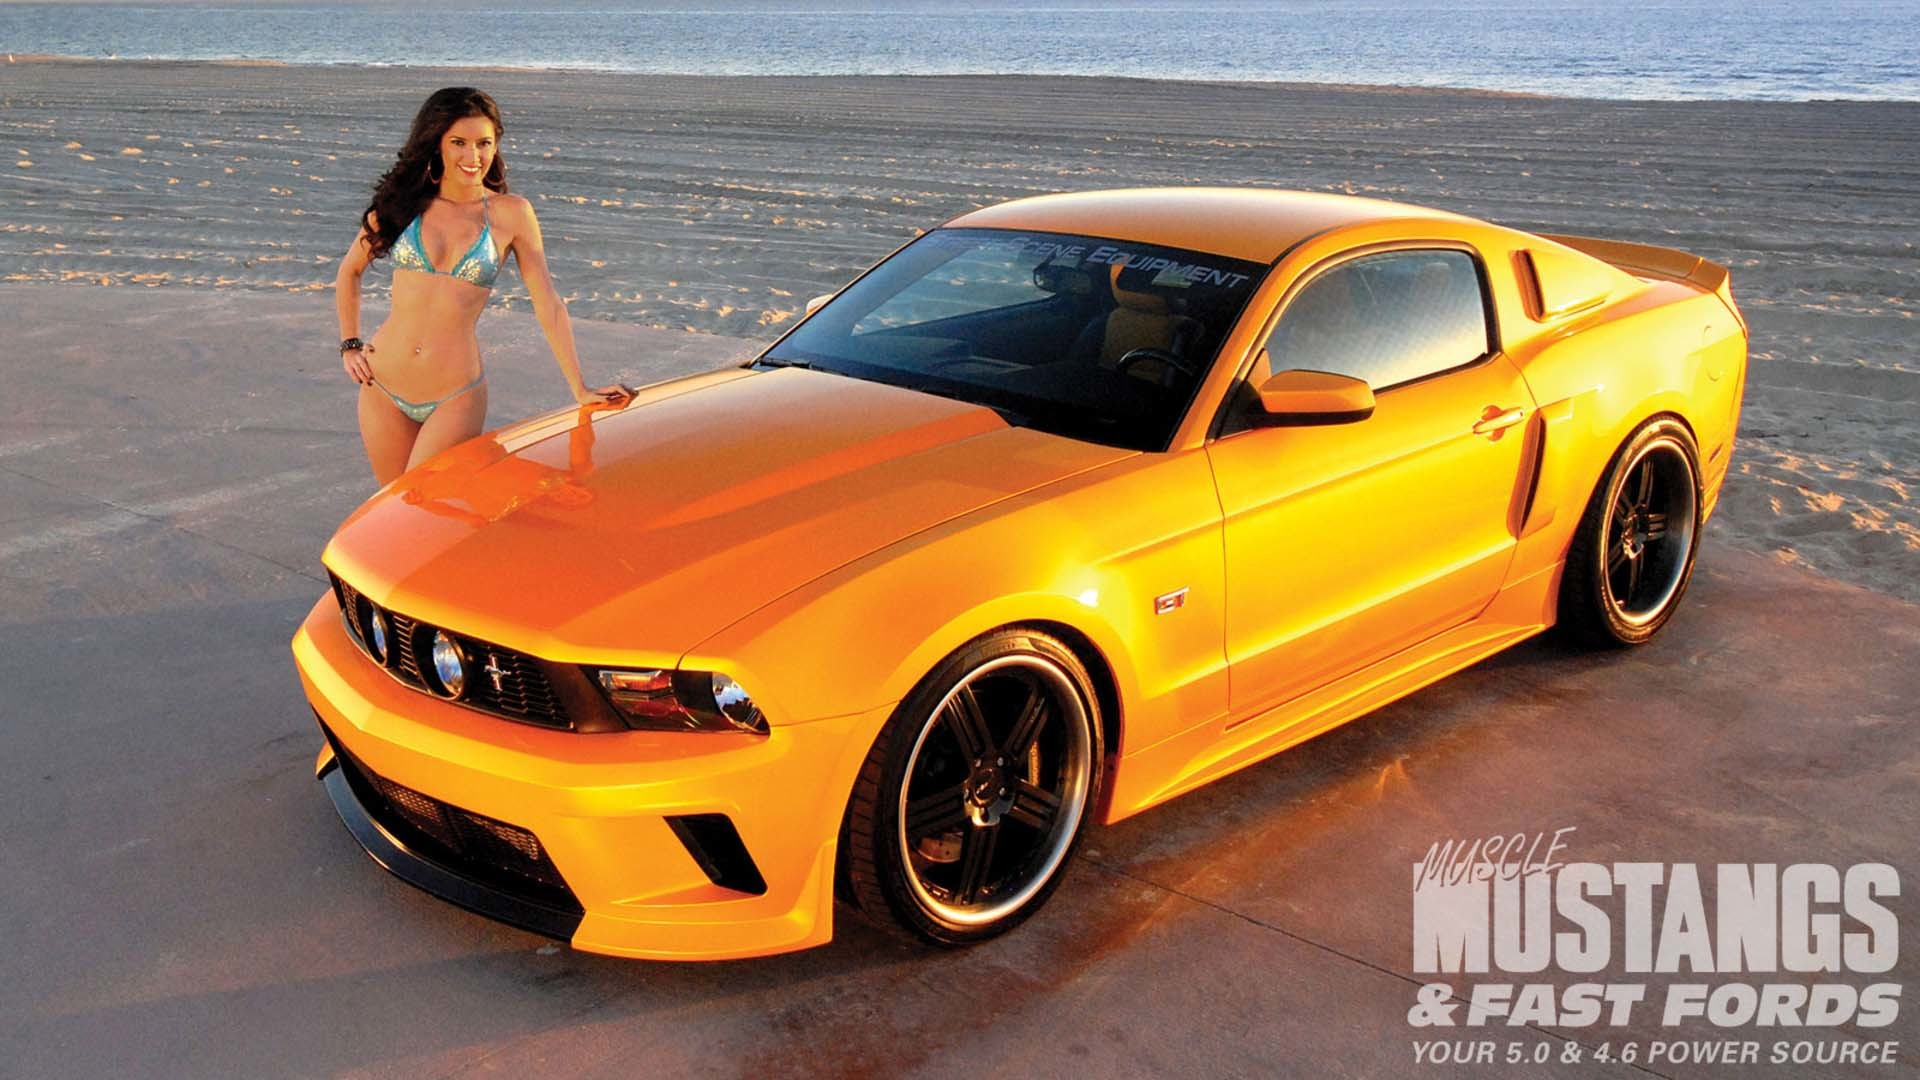 Hot Ford Mustangs · 0